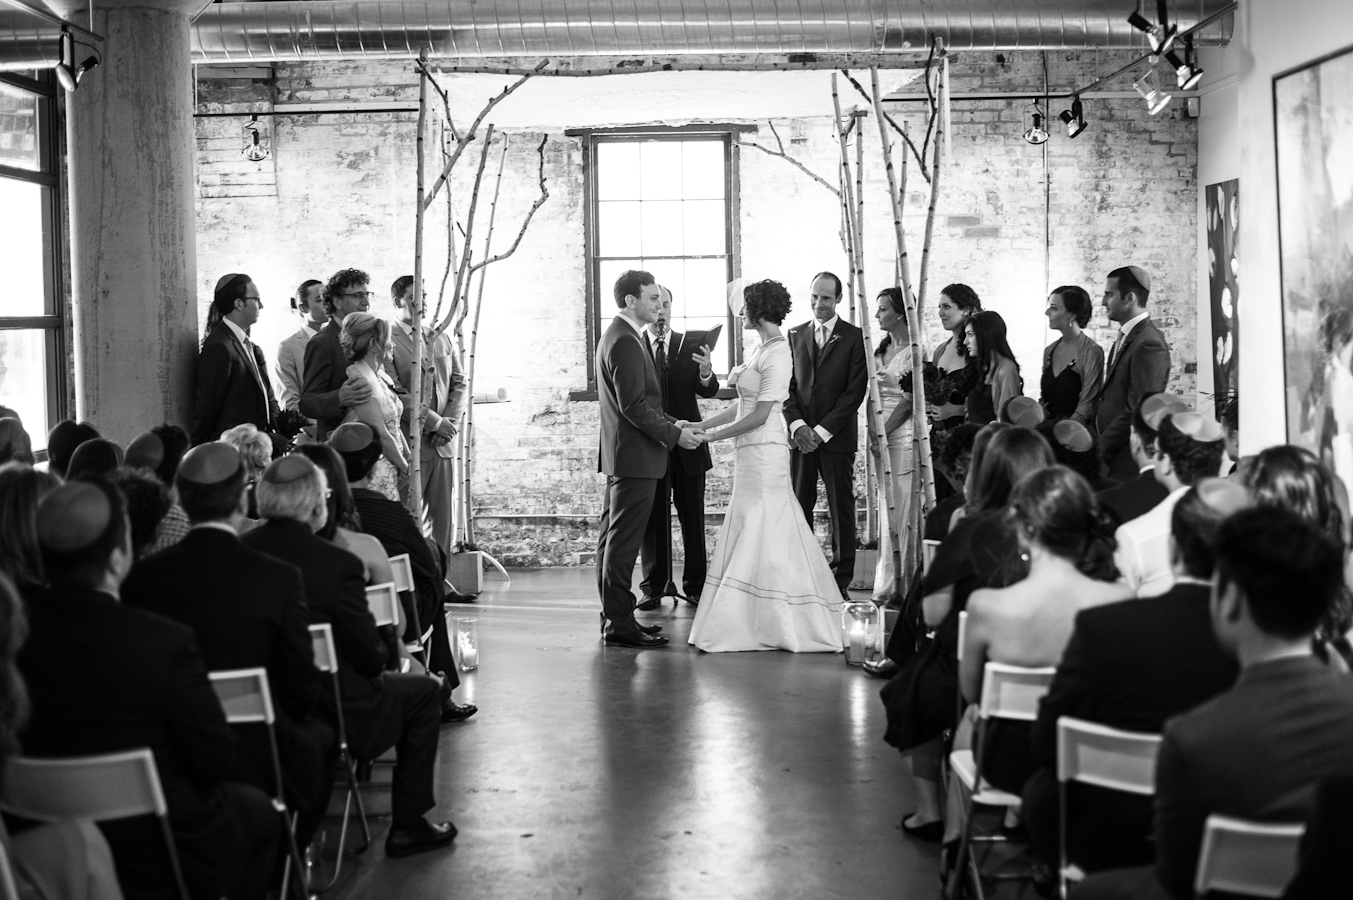 Or and Ryan Wedding Ceremony at Arta Gallery, Distillery District Toronto